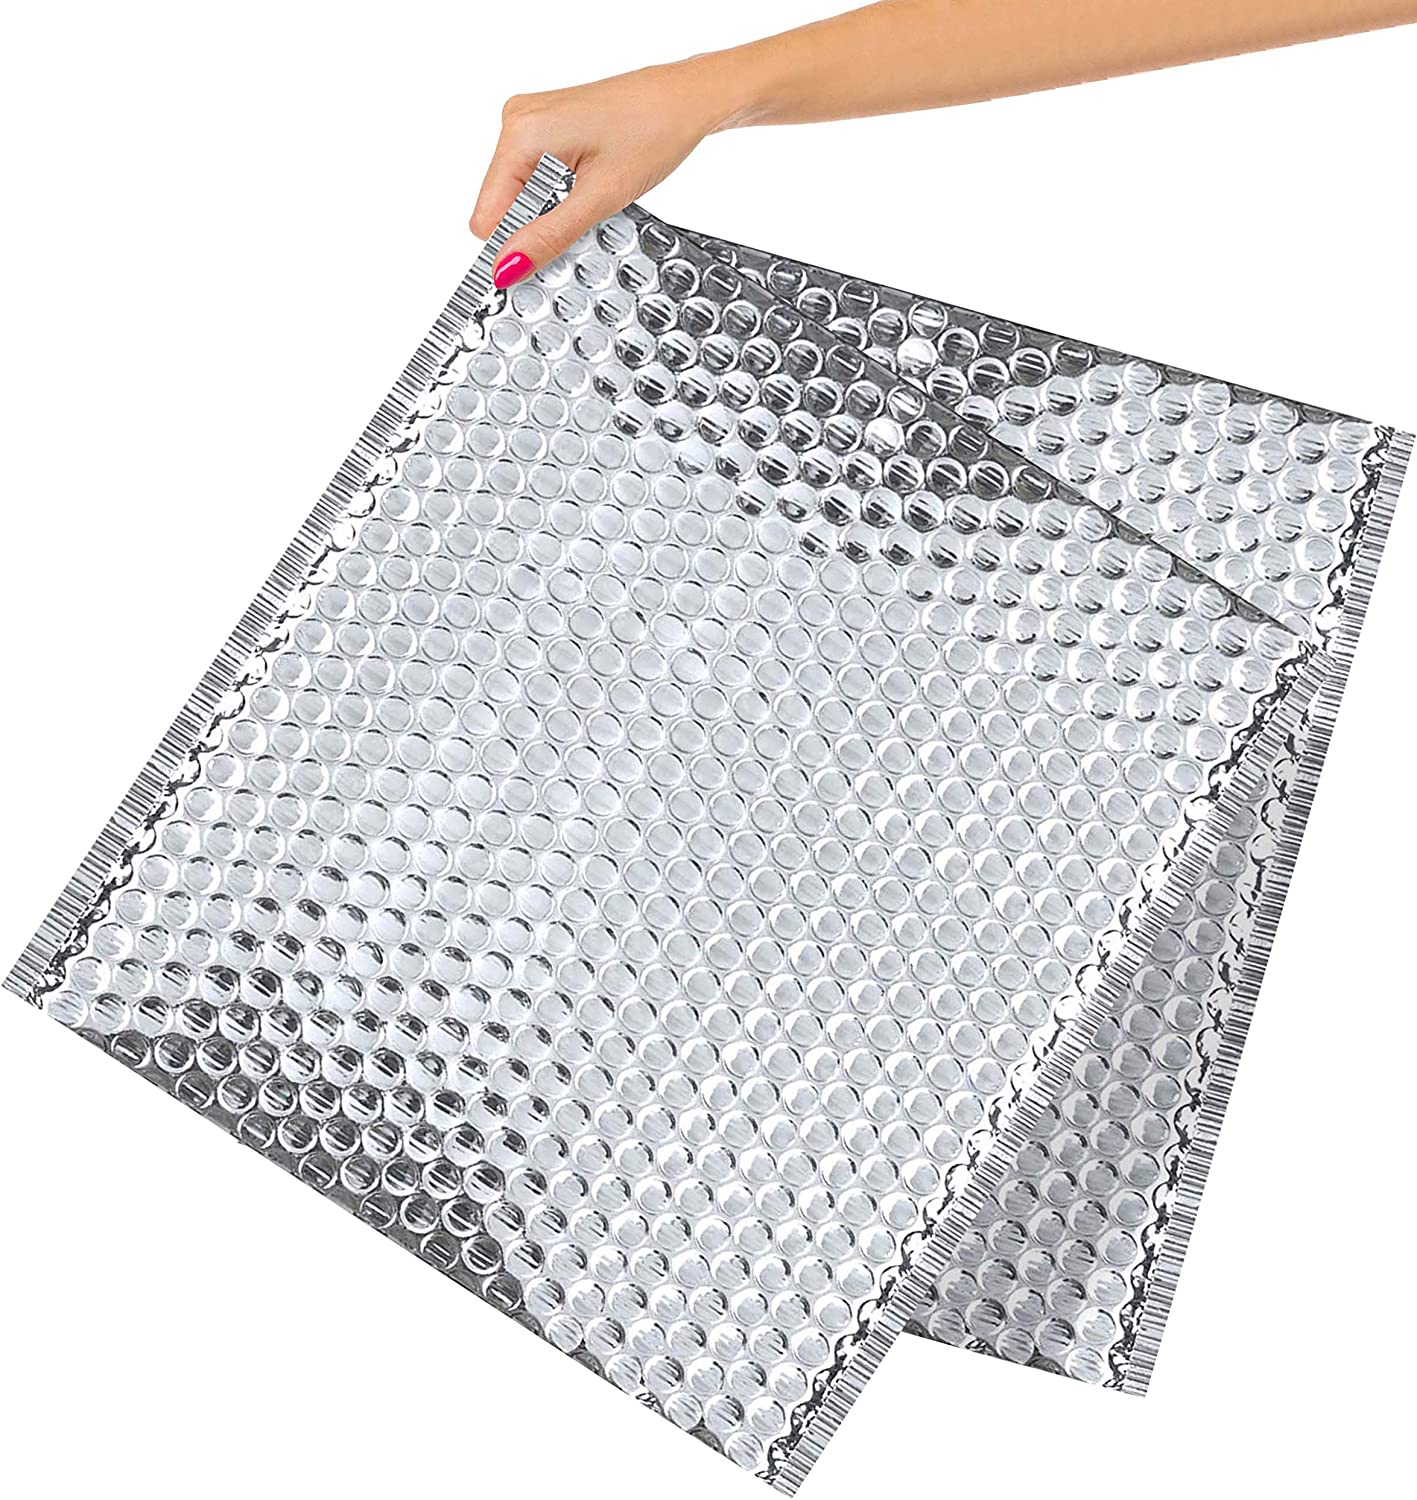 10 Pack Cool Shield Bubble Mailers 15x17. Thermal padded envelopes 15 x 17. X-Large cushion food mailers. Peel and Seal. Thermal shipping bags for mailing, packing. Packaging in bulk, wholesale price.